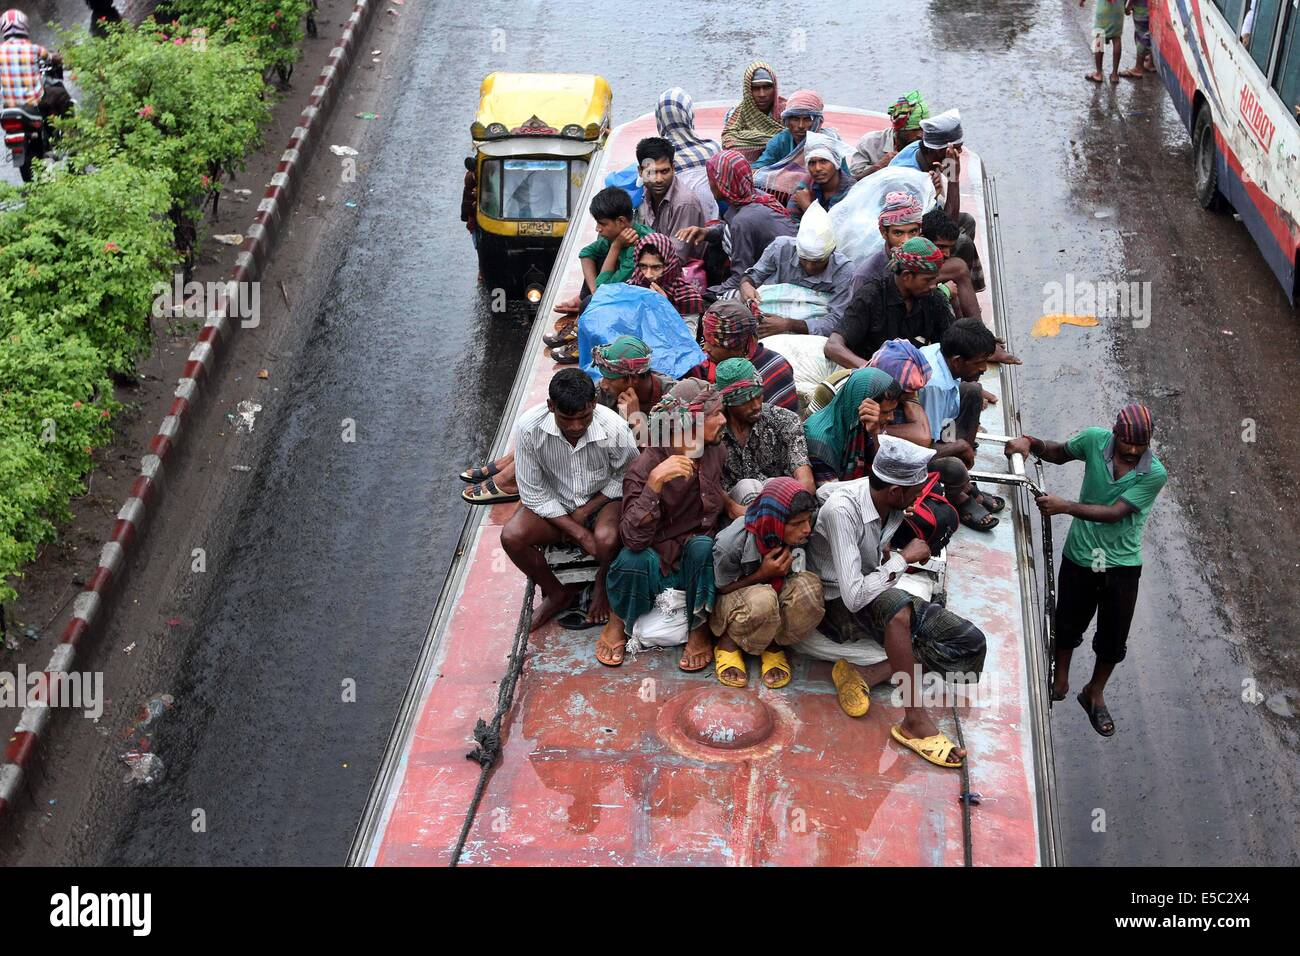 Dhaka, Bangladesh. 27th July 2014 People stay on the rooftop of a homebound bus in Dhaka, capital of Bangladesh. - Stock Image